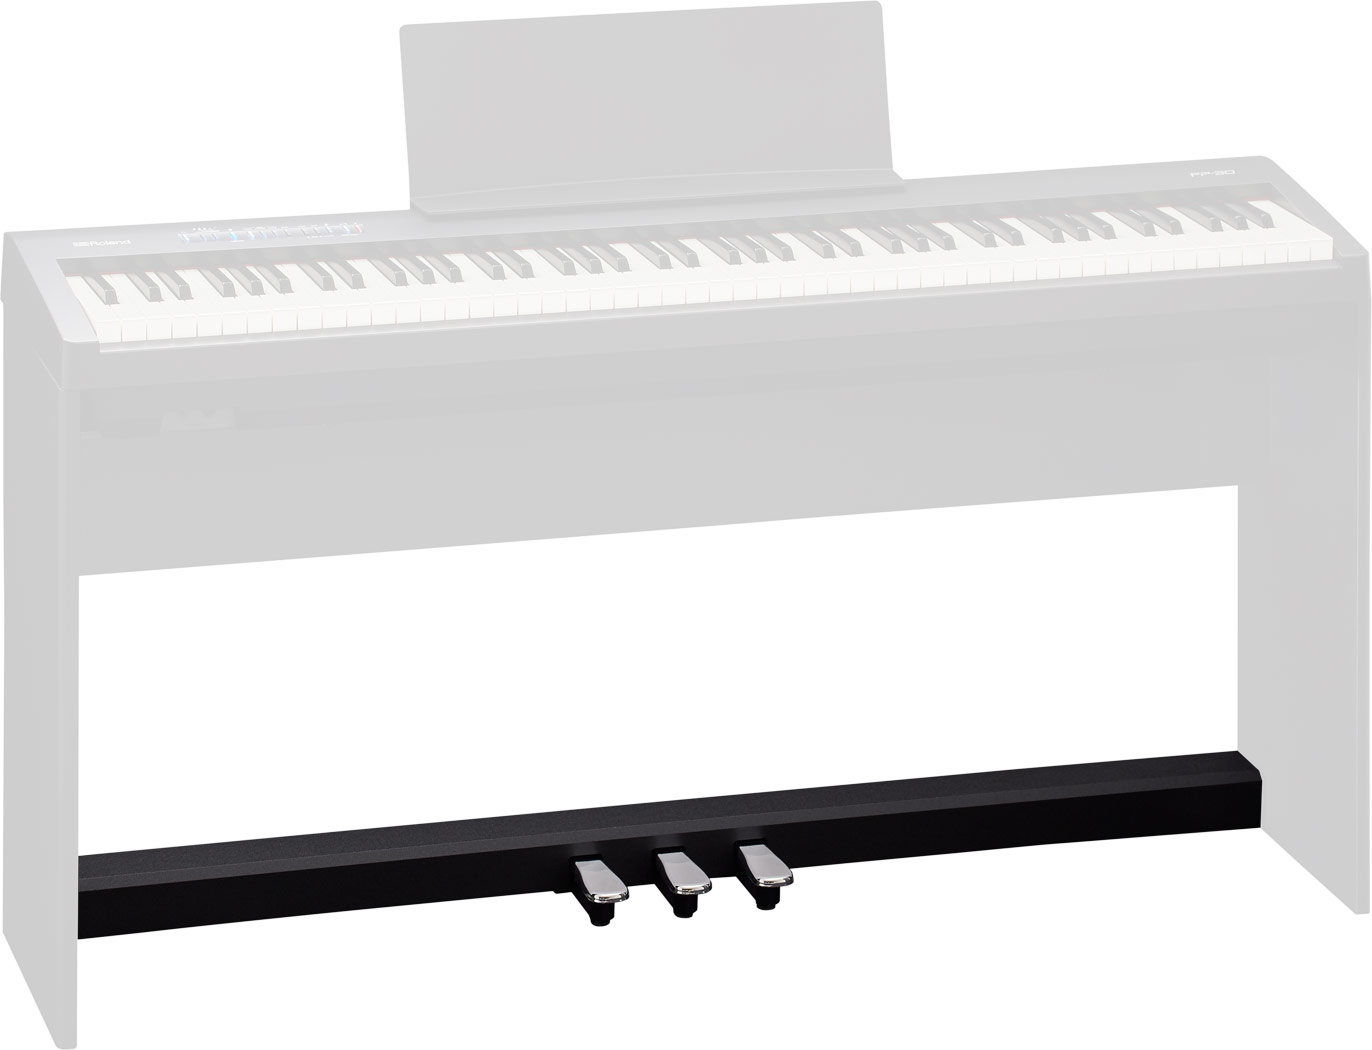 Roland Kpd 70 Pedal Unit For Fp 30 Digital Piano